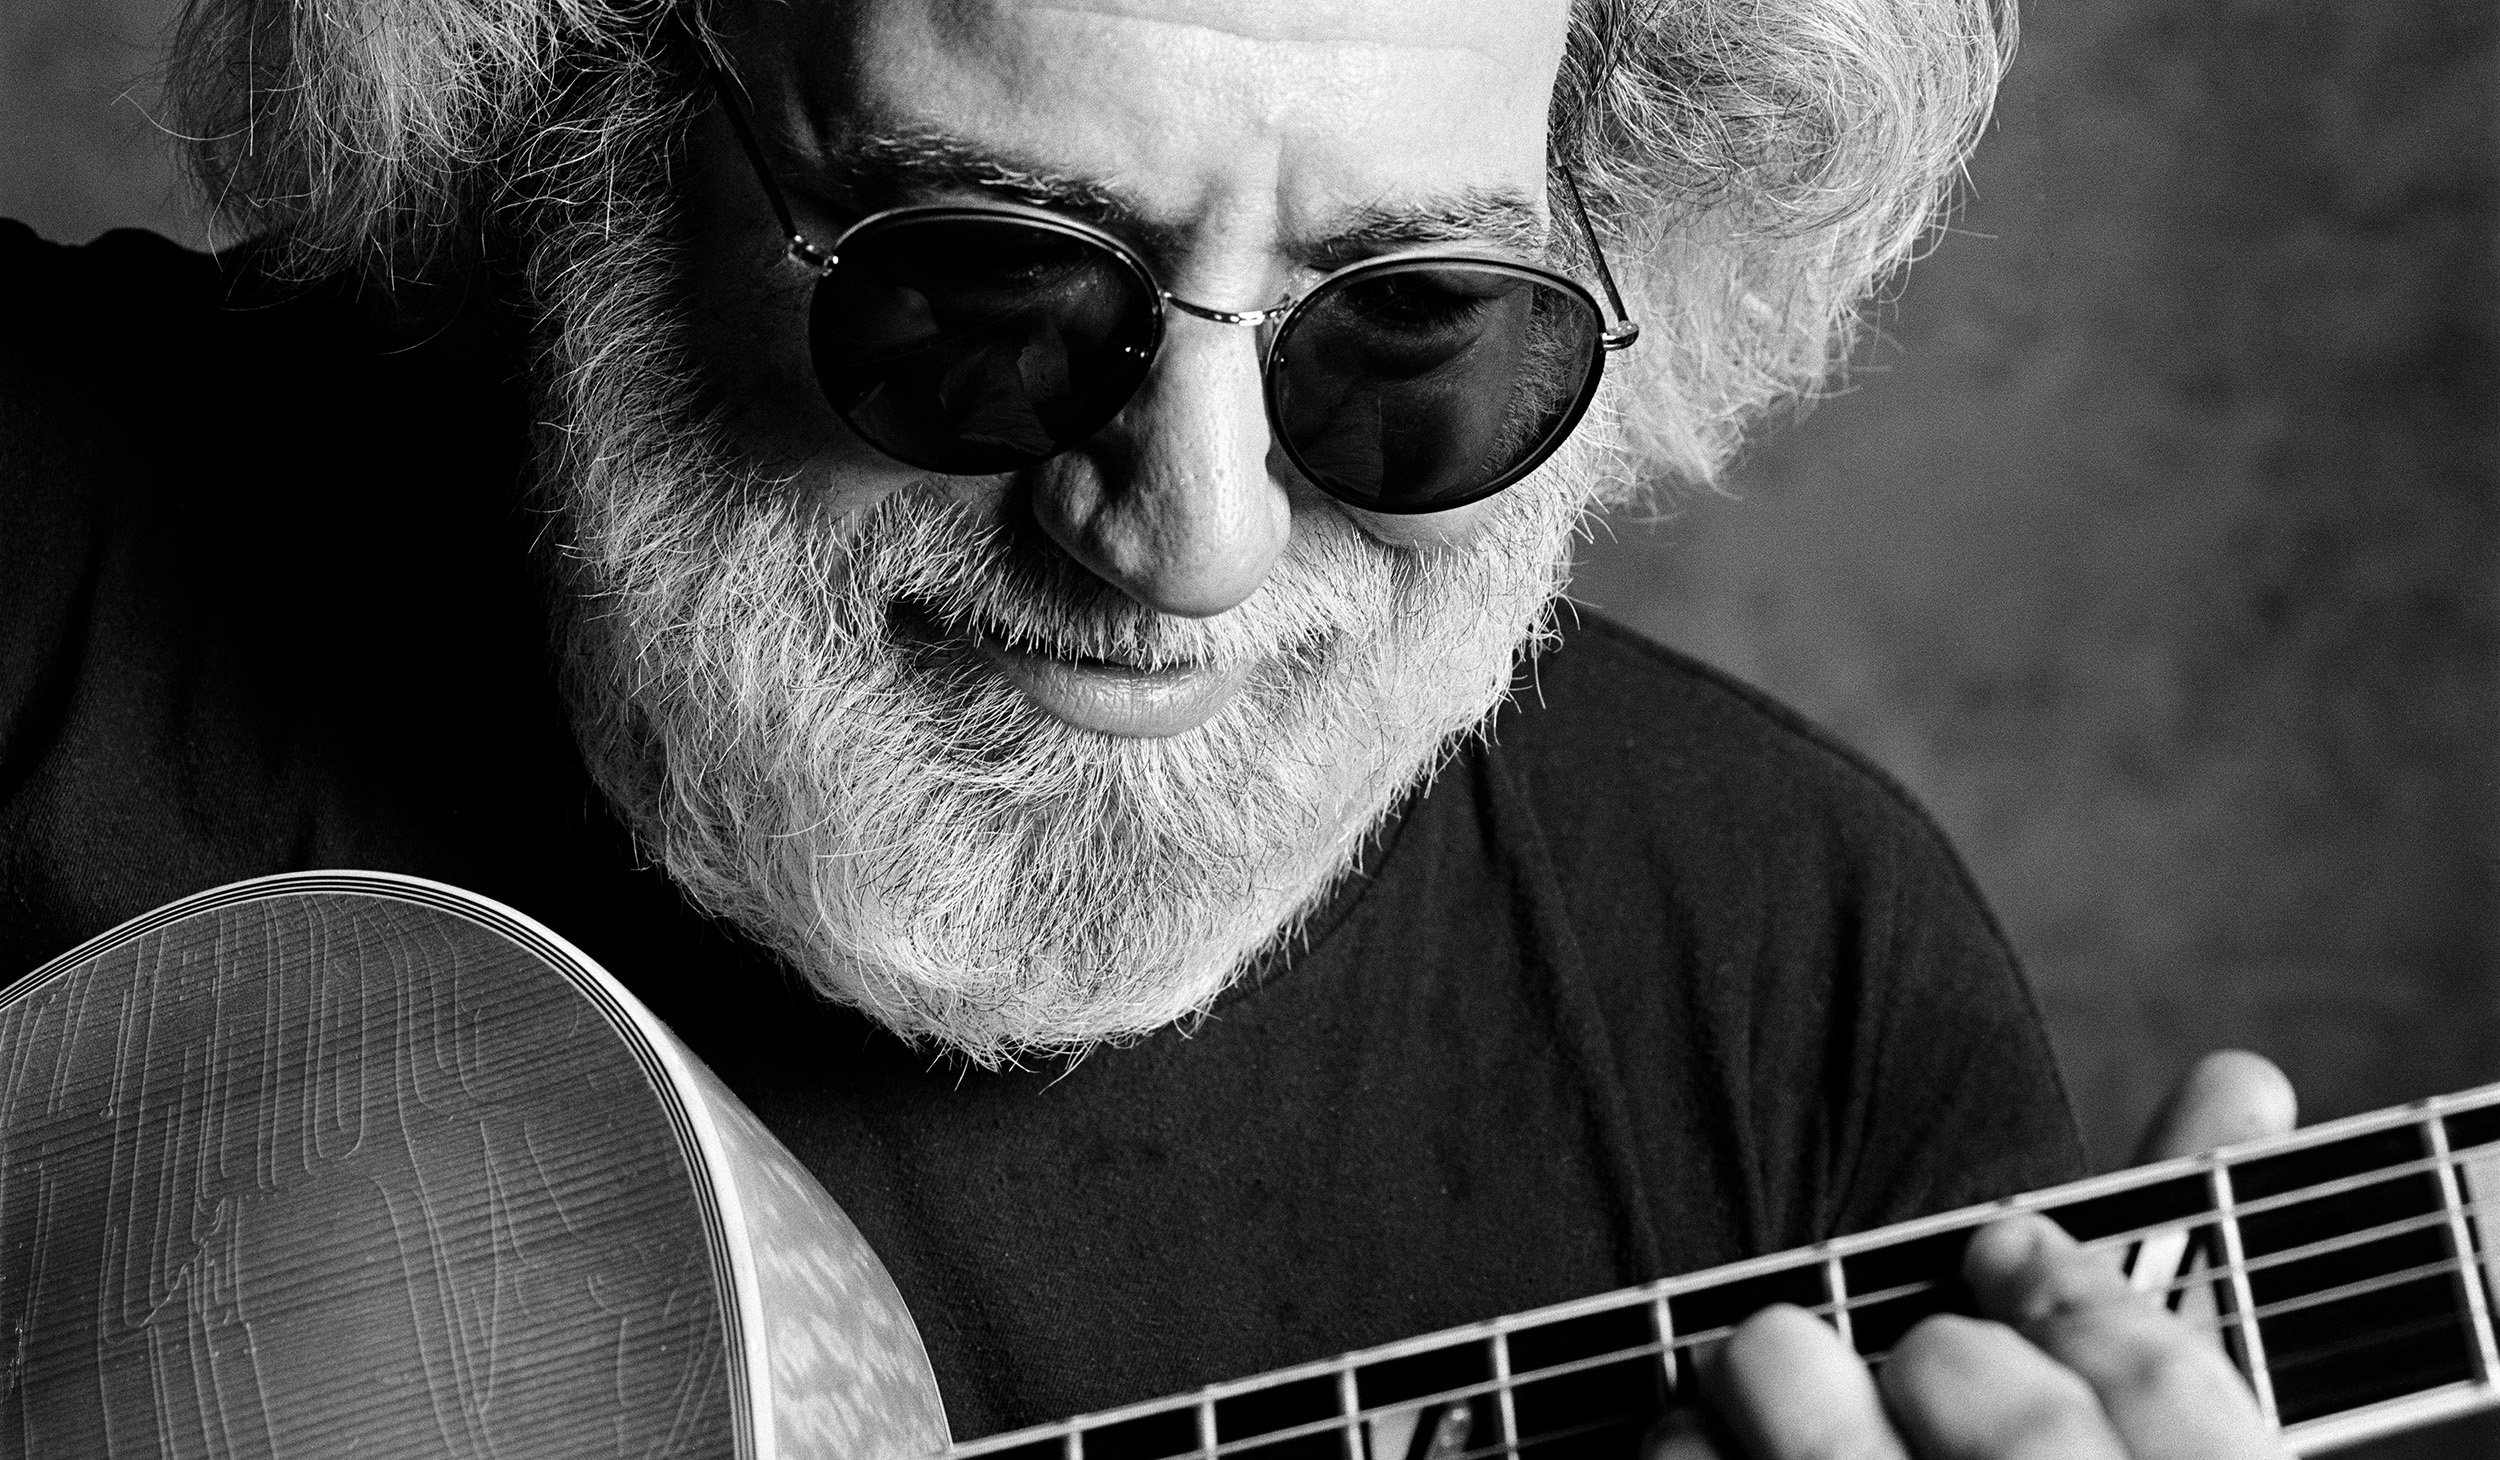 the life and death of jerry garcia We honor the days between with a very special concert celebrating the life of jerry garcia on jerry garcia's 74th birthday in 2016, warren haynes teamed up with the colorado symphony to pay tribute to the legendary founder of the grateful dead.